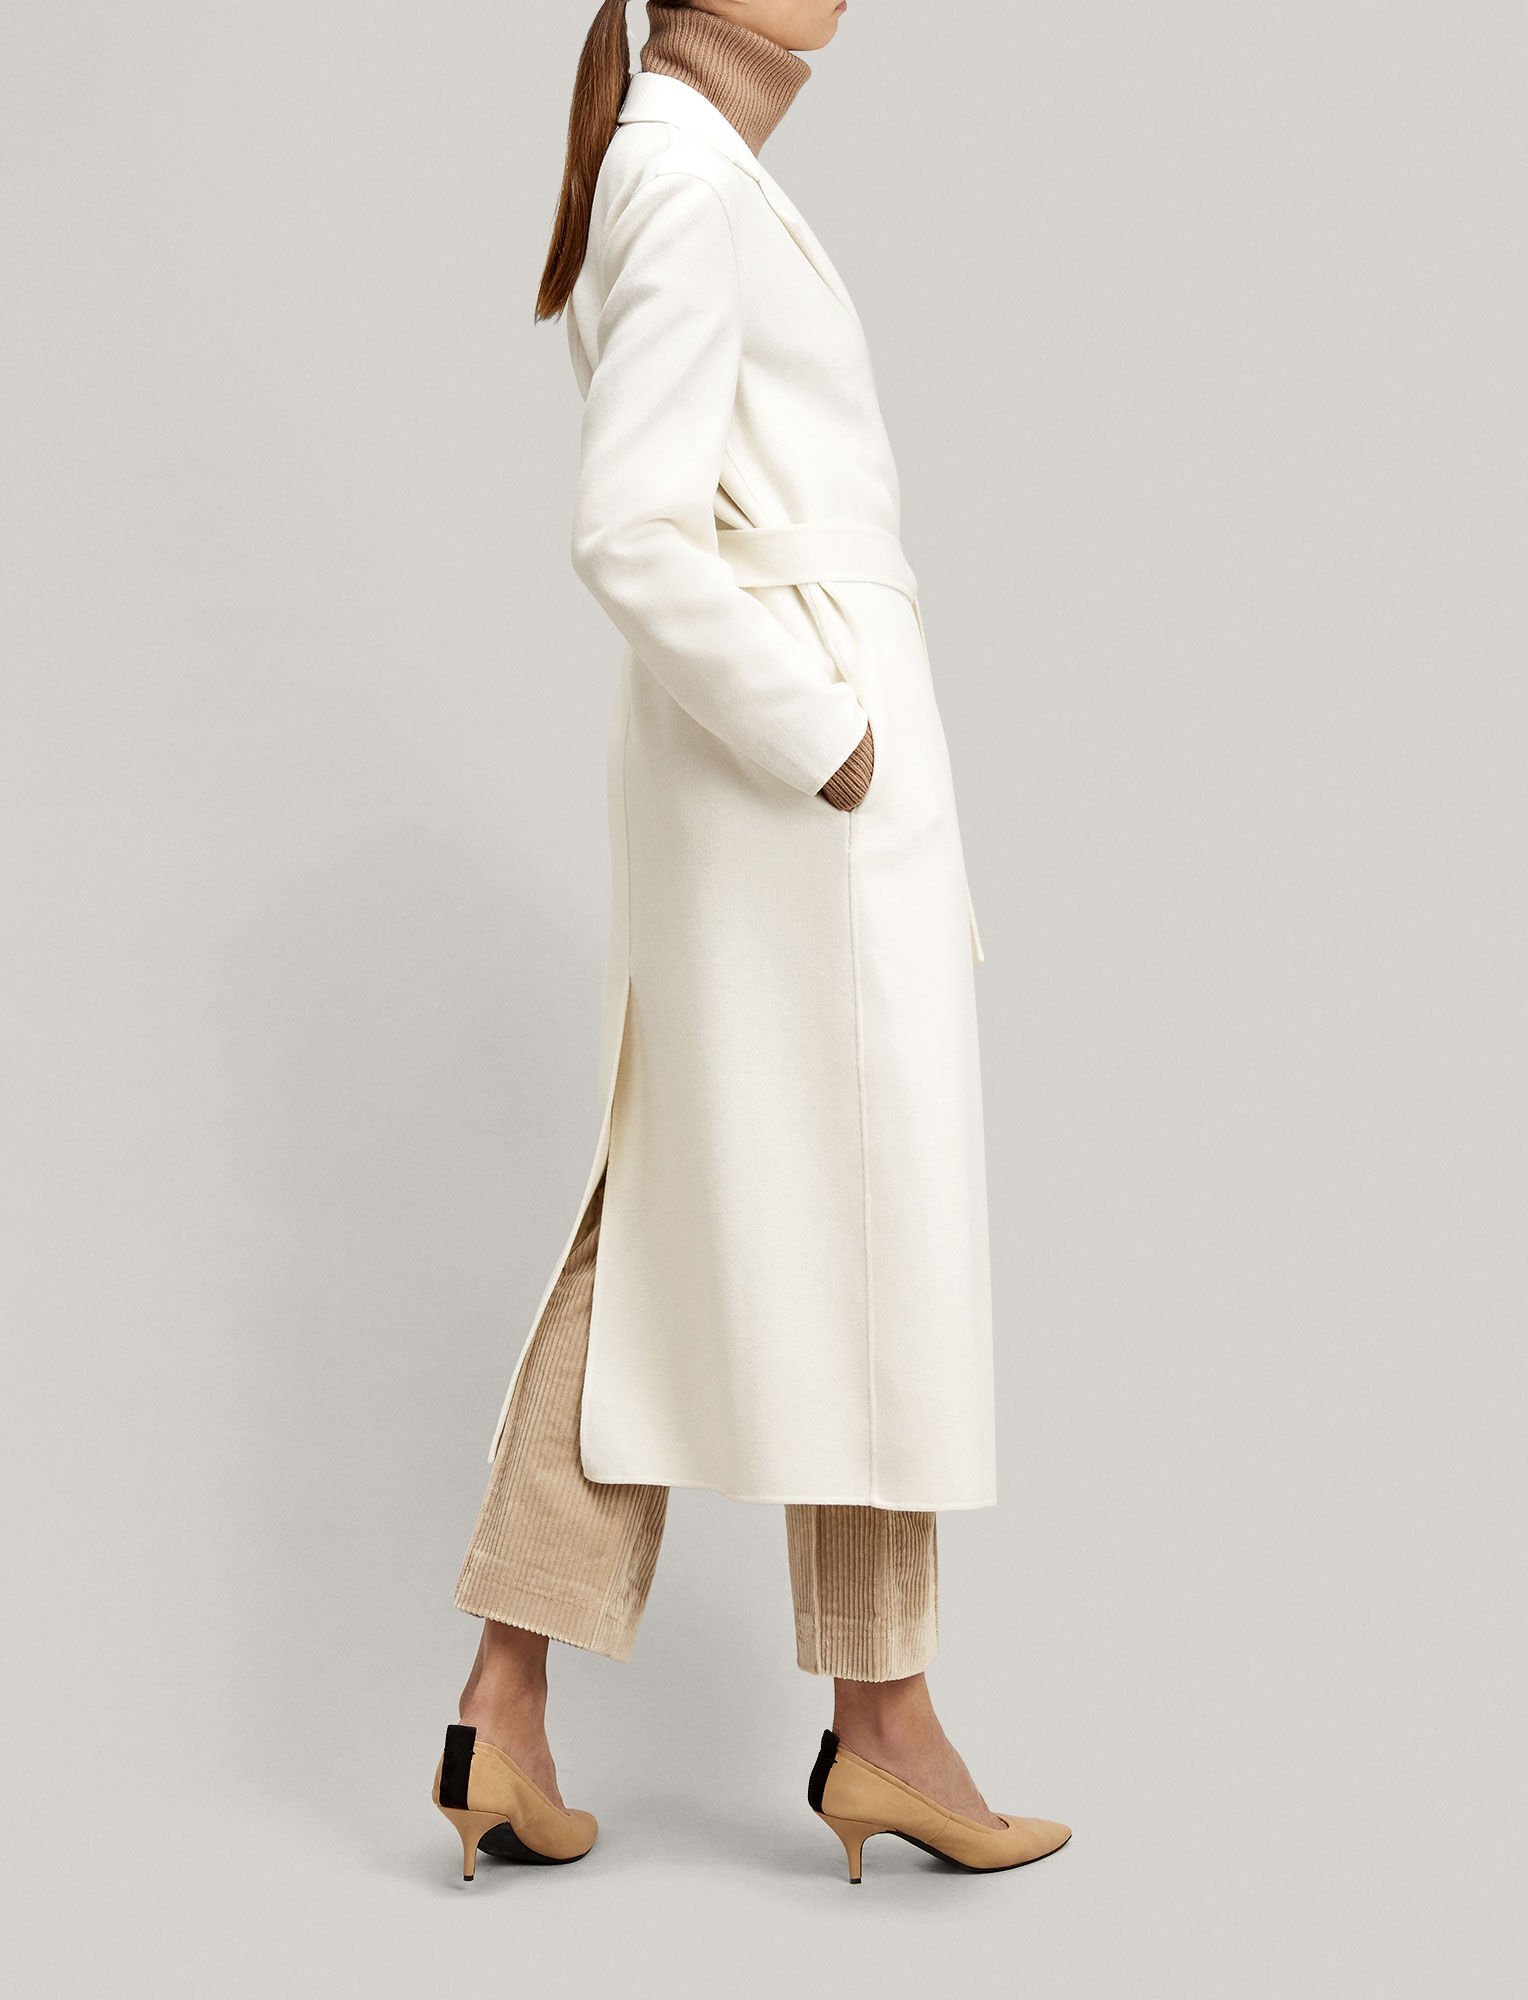 Joseph, Light Double Cashmere Kido Coat, in CHALK